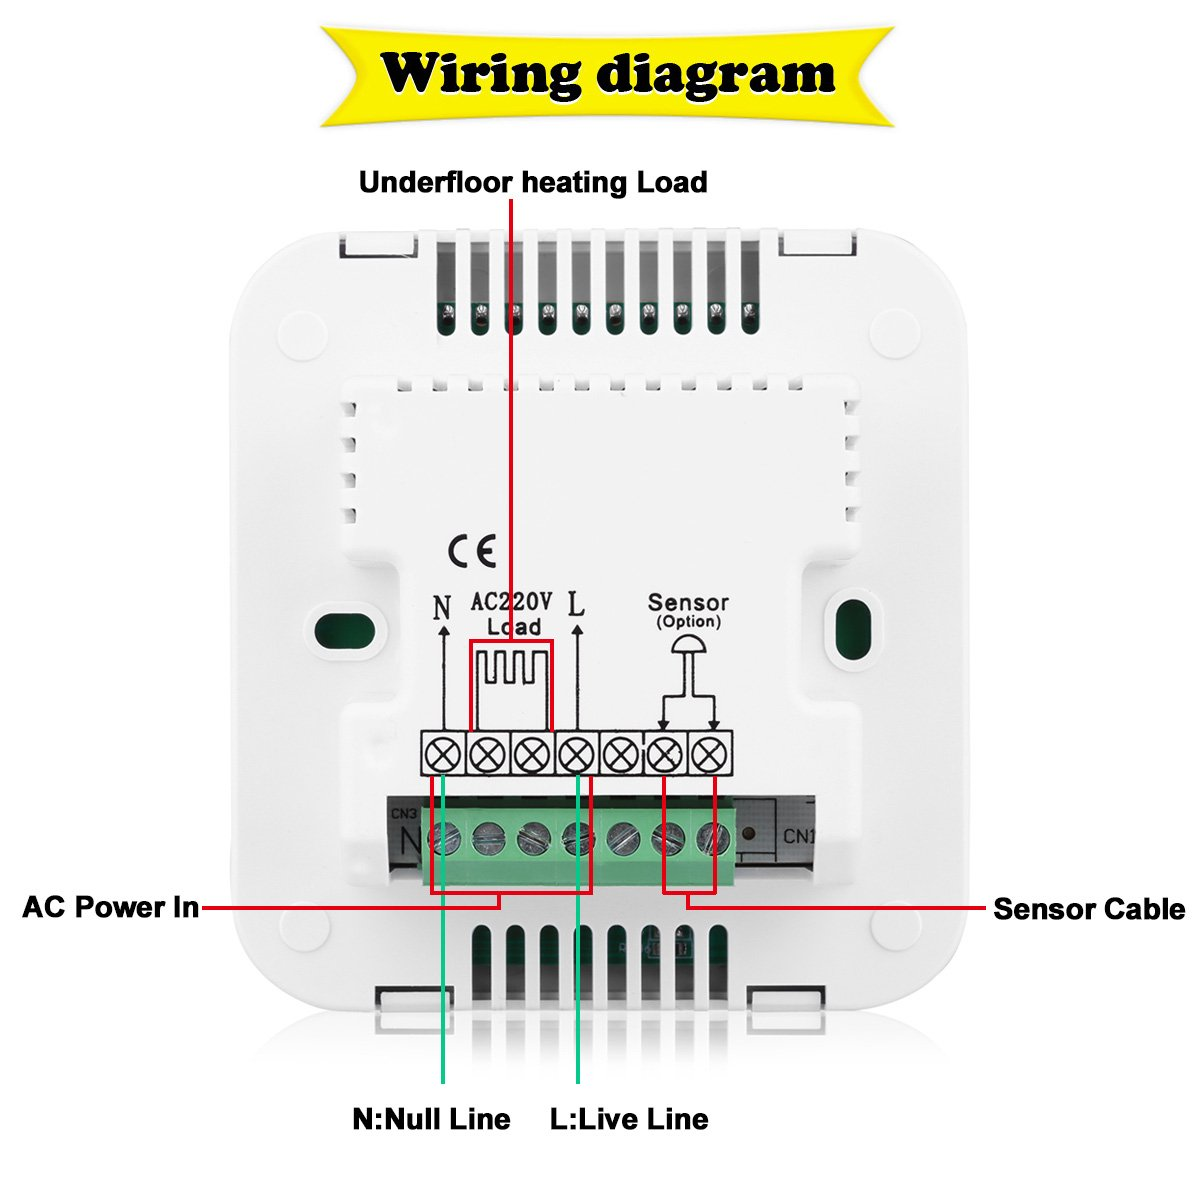 floureon heating thermostat lcd digital display backlight daily 6 on Wifi Thermostat Wiring Diagram for floureon heating thermostat lcd digital display backlight daily 6 stages weekly 5 2 6 1 7 programmable electric floor heating thermostat underfloor at Electric Water Heater Thermostat Diagram